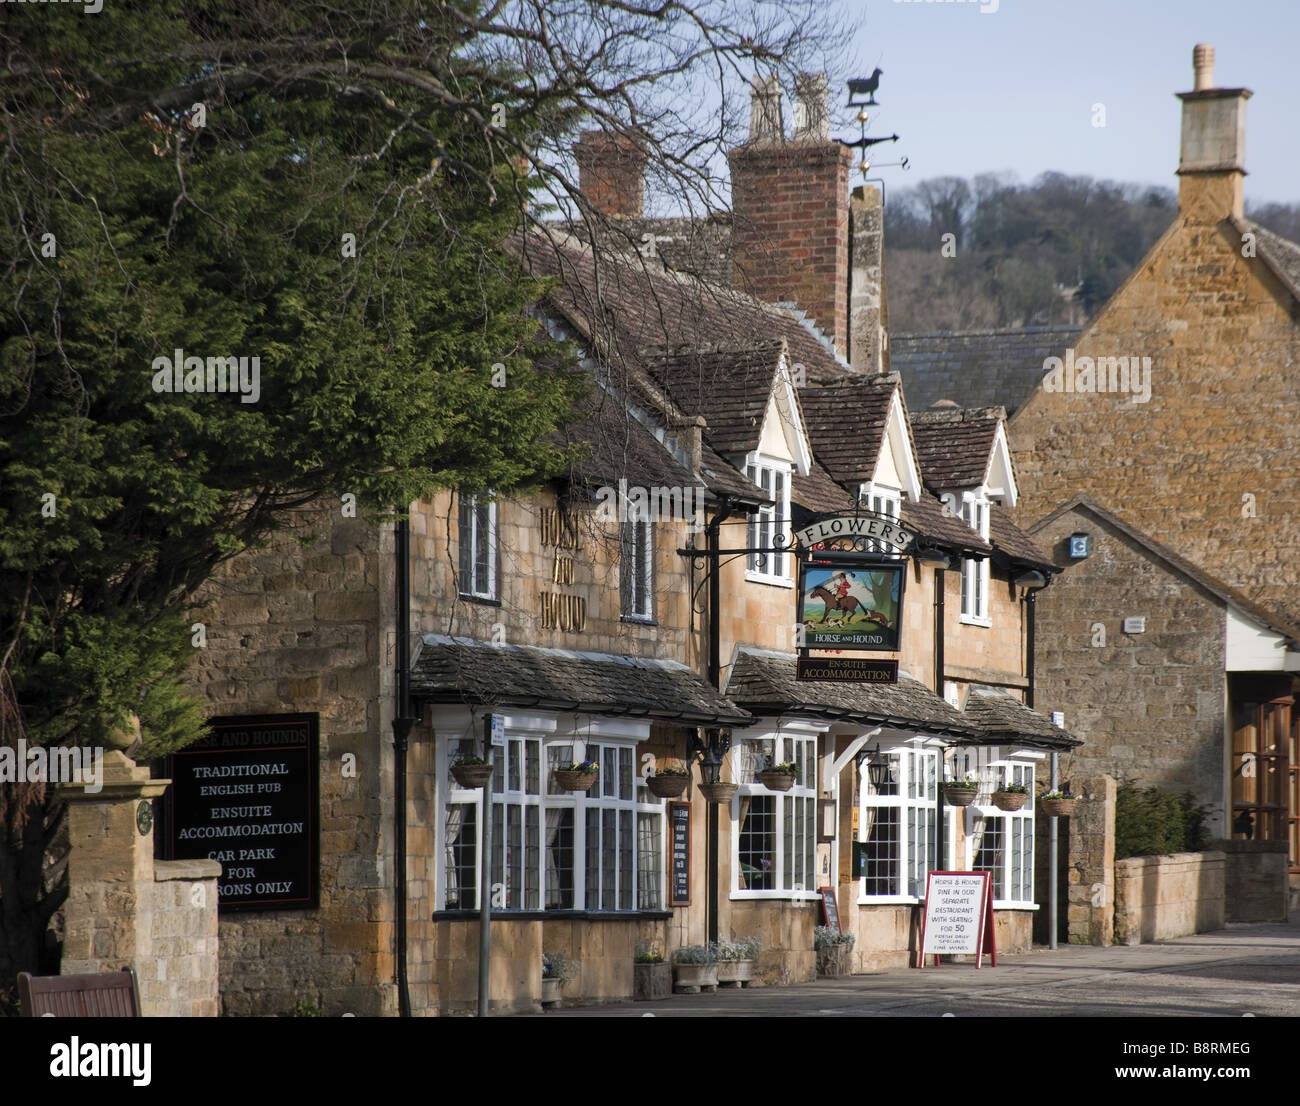 Pub High Street Broadway Cotswolds Worcestershire Uk Stock